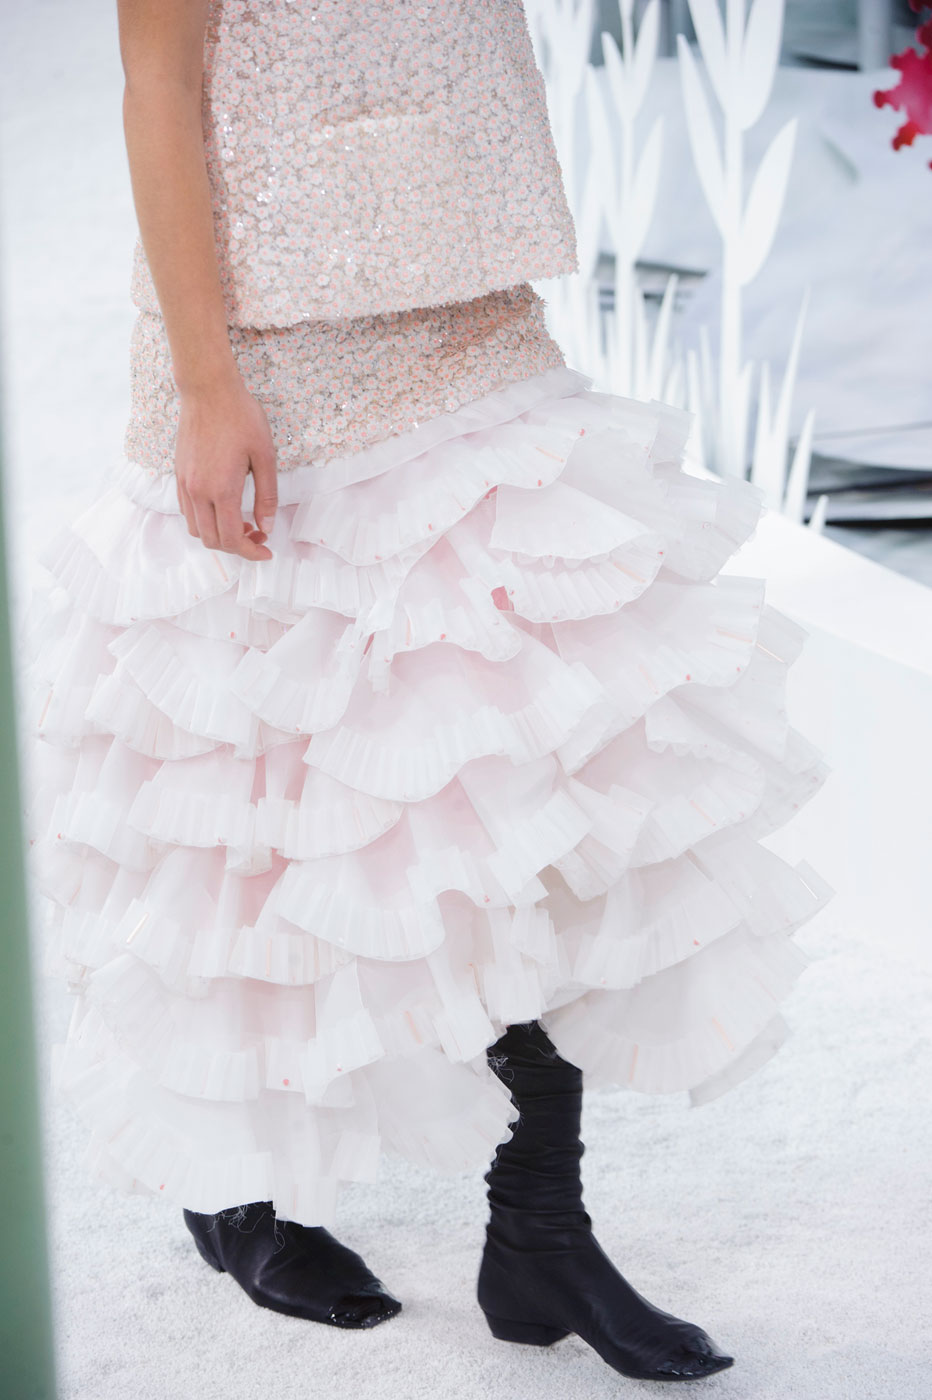 Chanel-fashion-runway-show-close-ups-haute-couture-paris-spring-summer-2015-the-impression-137